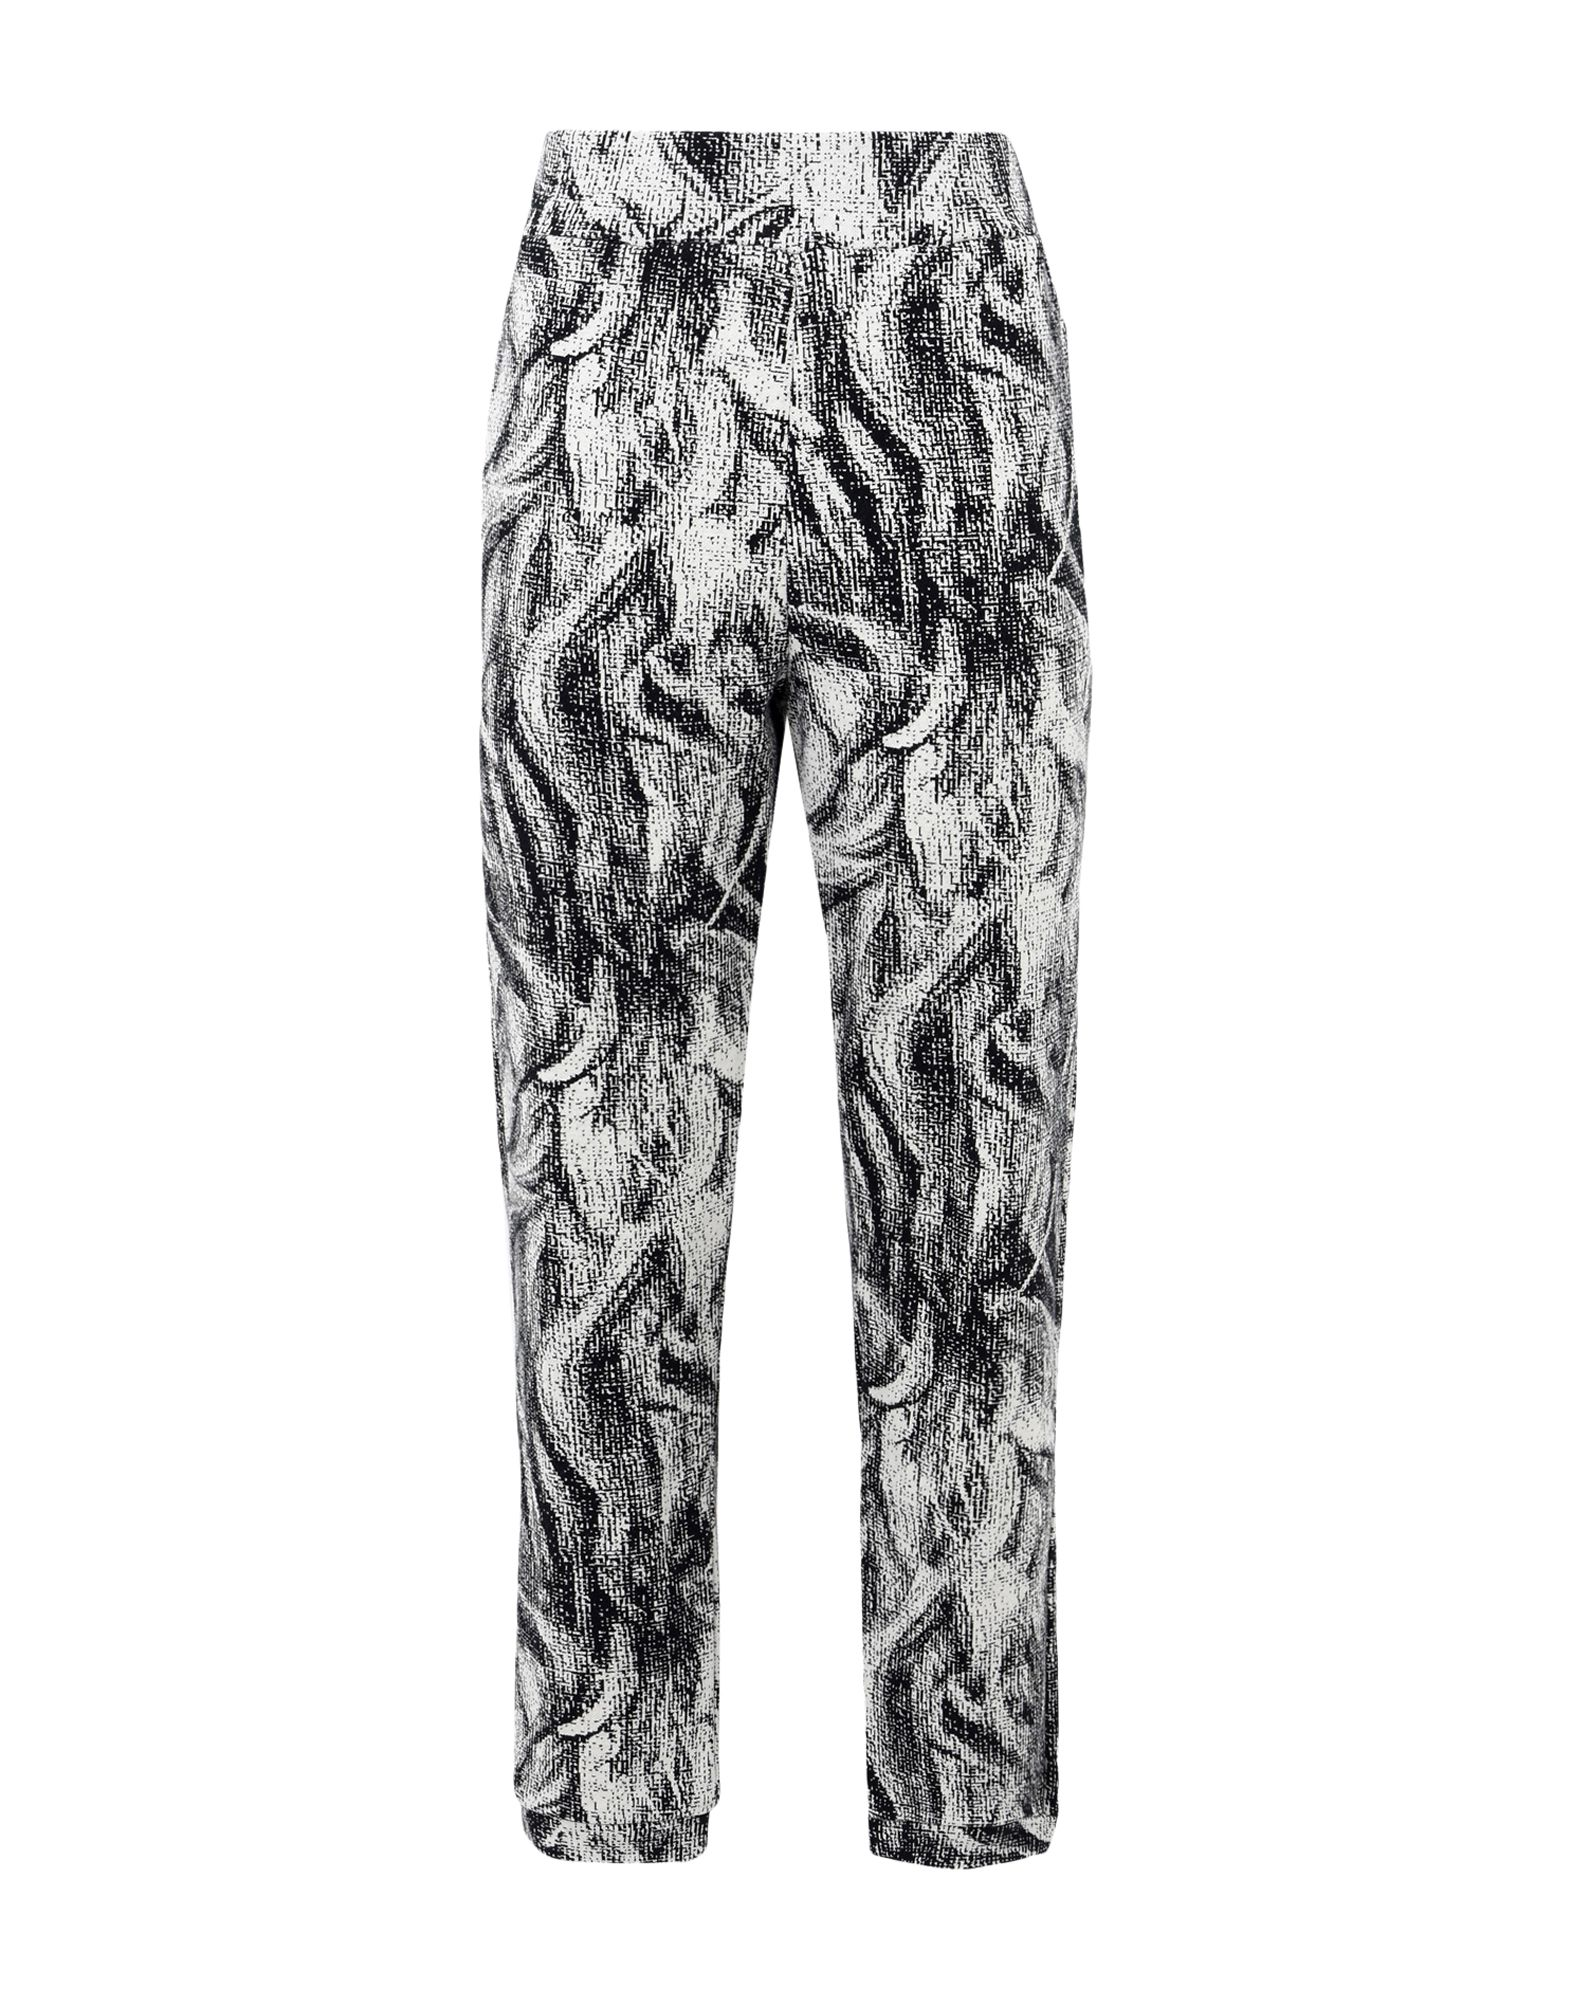 Pantalone Christopher Kane Disney For Beauty And The Beast - Donna - Acquista online su 6VpiumZQTJ